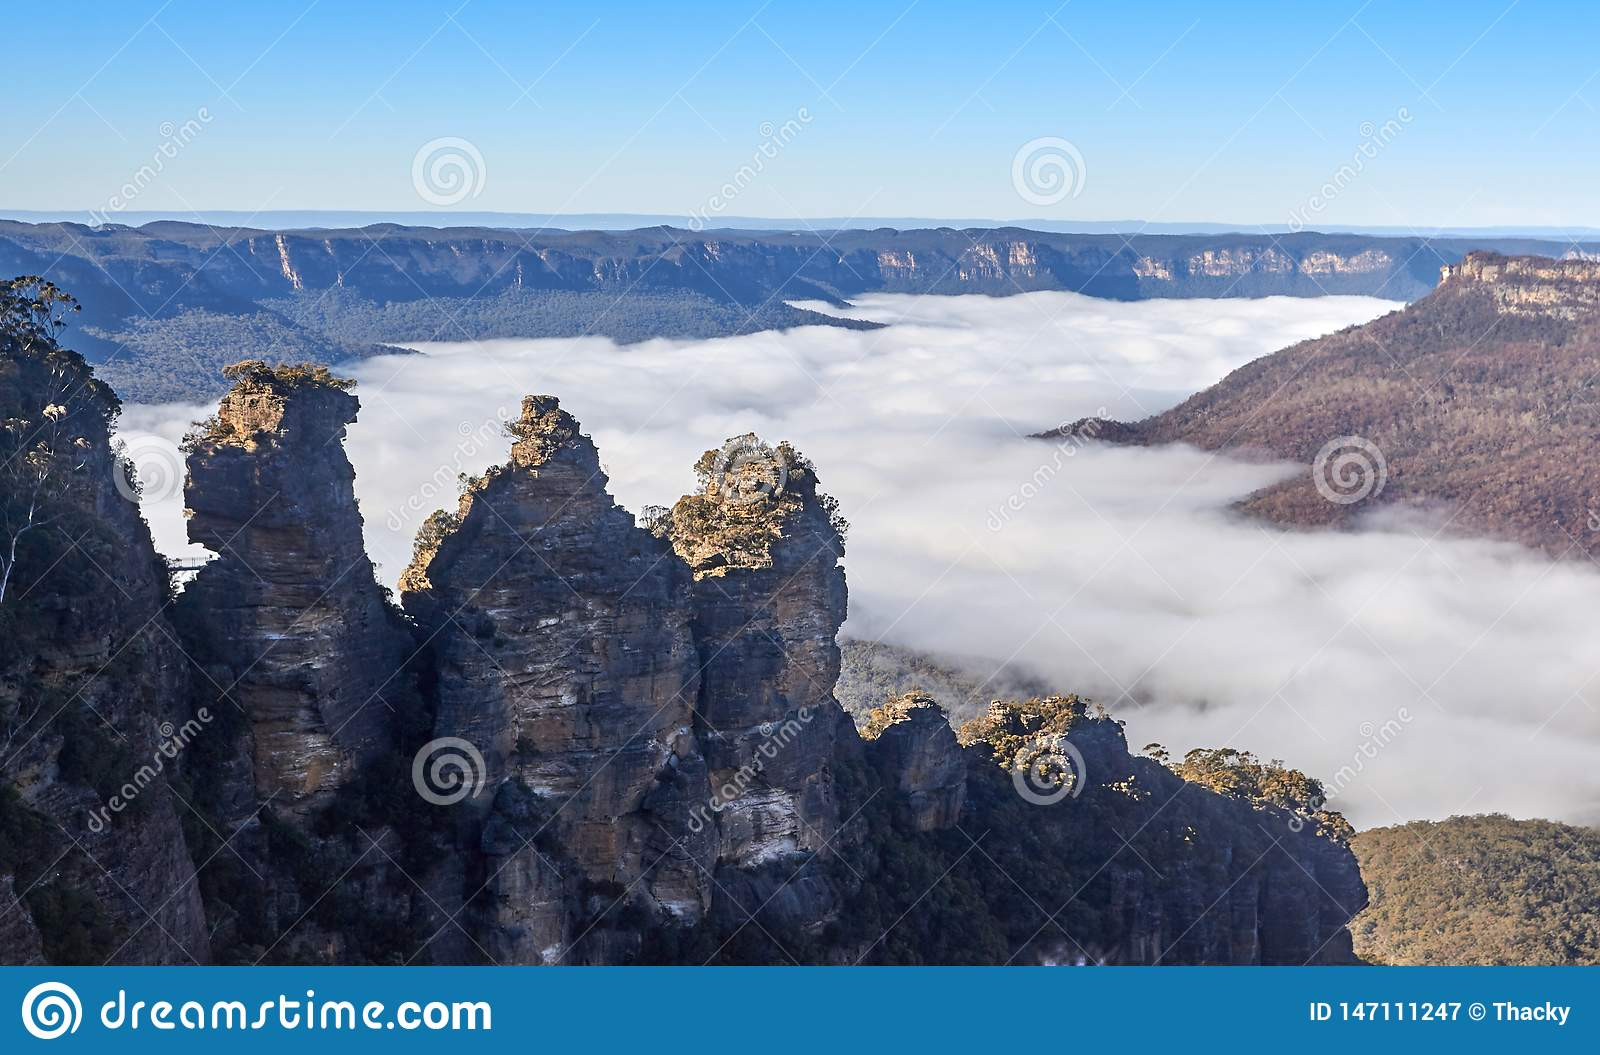 The Three Sisters above fog at the Blue Mountains Australia